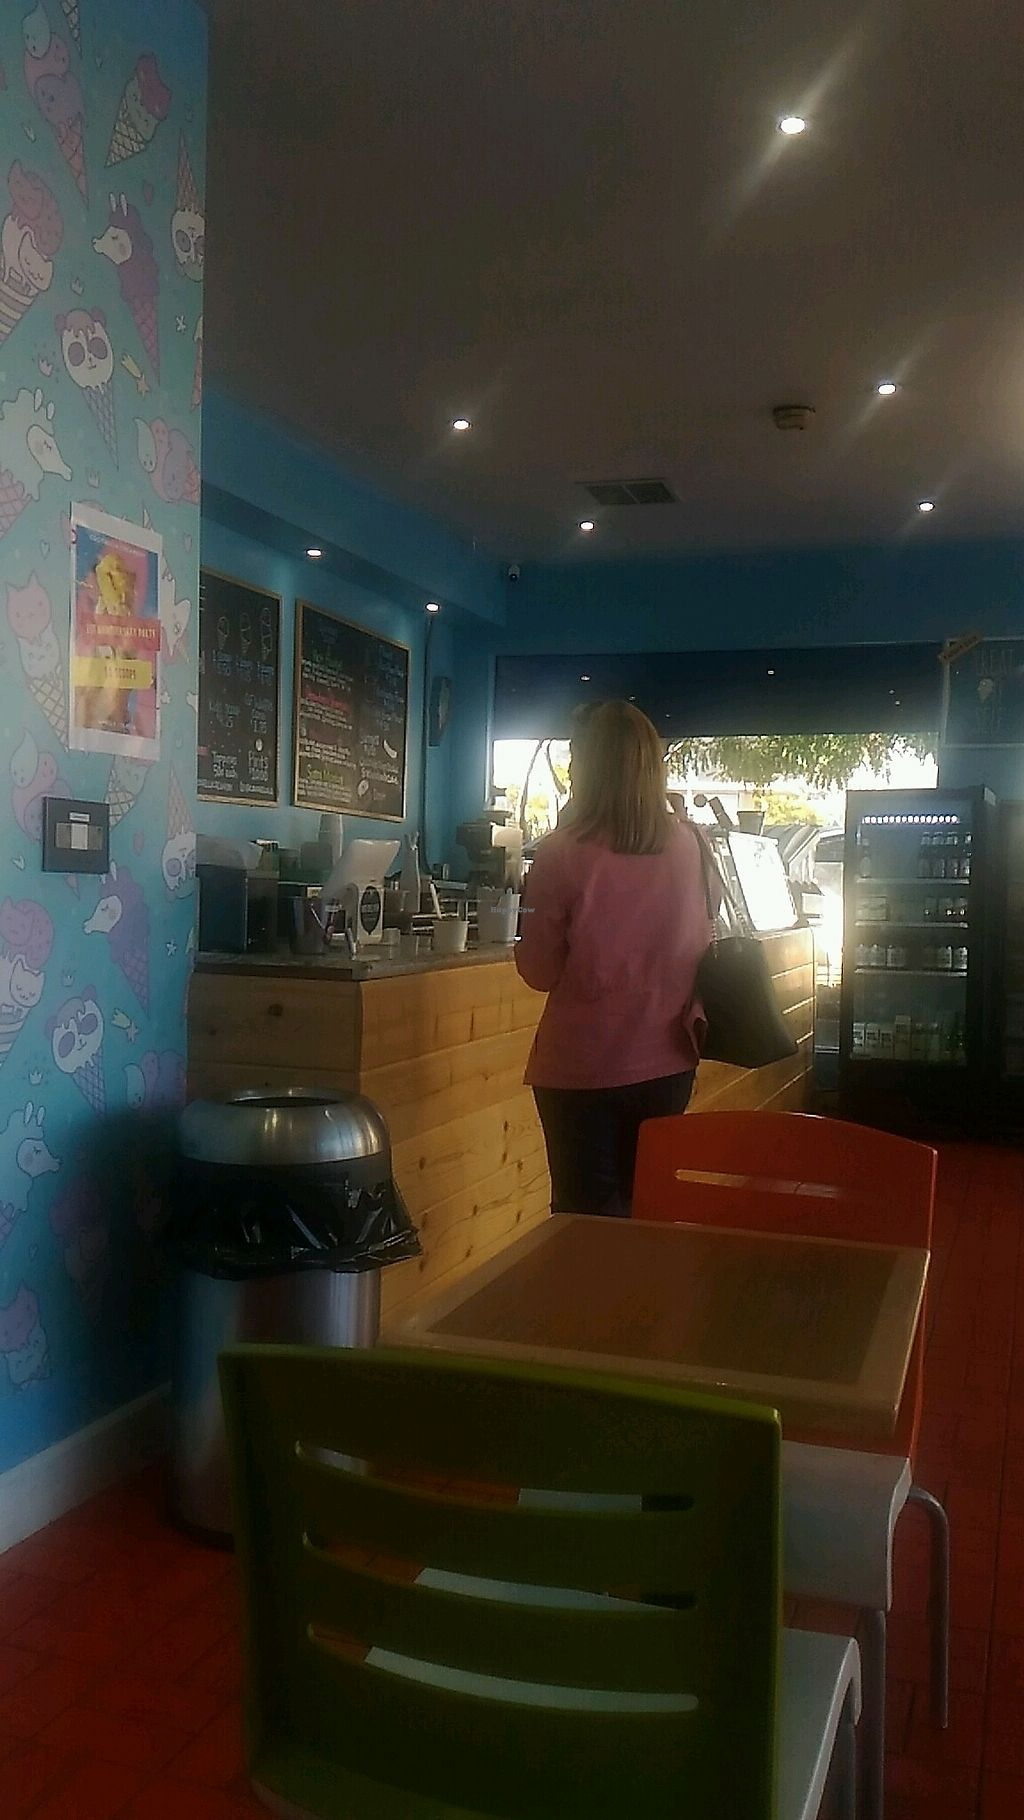 "Photo of Cocobella Creamery  by <a href=""/members/profile/QuothTheRaven"">QuothTheRaven</a> <br/>inside <br/> March 17, 2018  - <a href='/contact/abuse/image/89735/371603'>Report</a>"